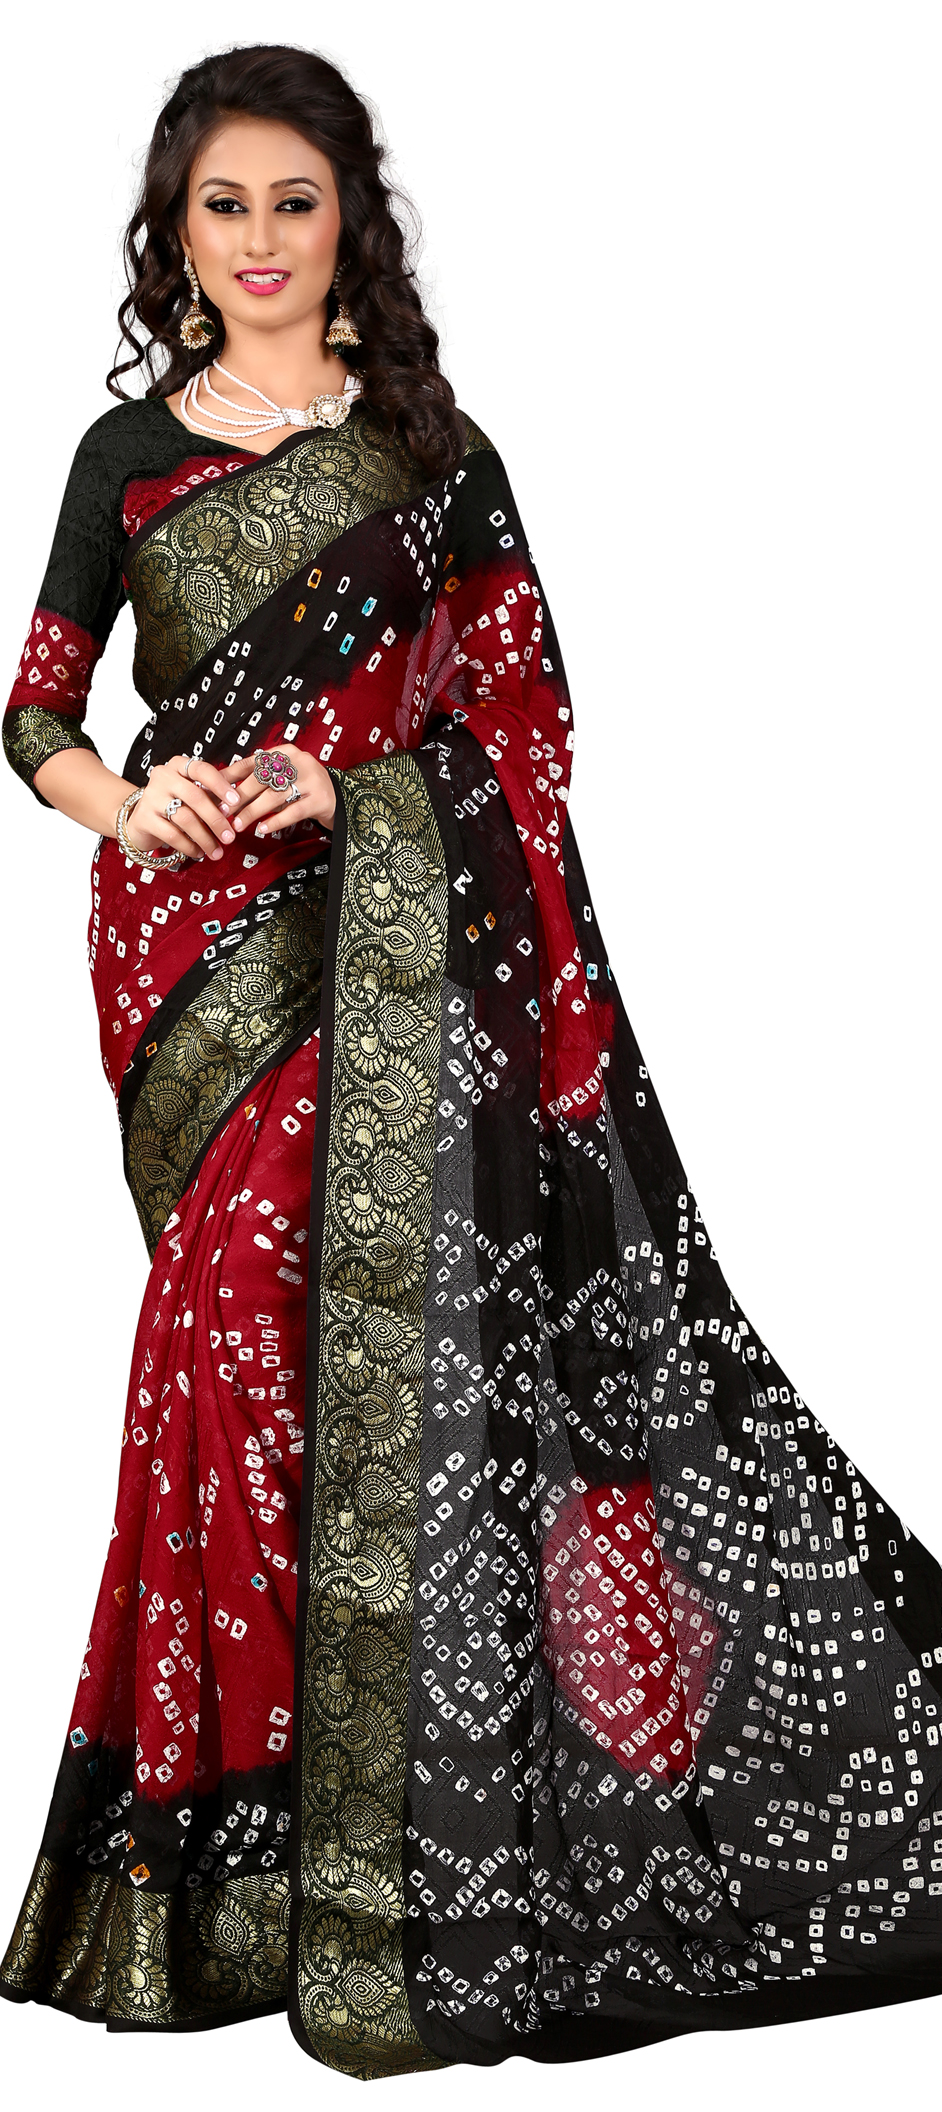 712818: Black and Grey, Red and Maroon color family Bandhej Sarees ...